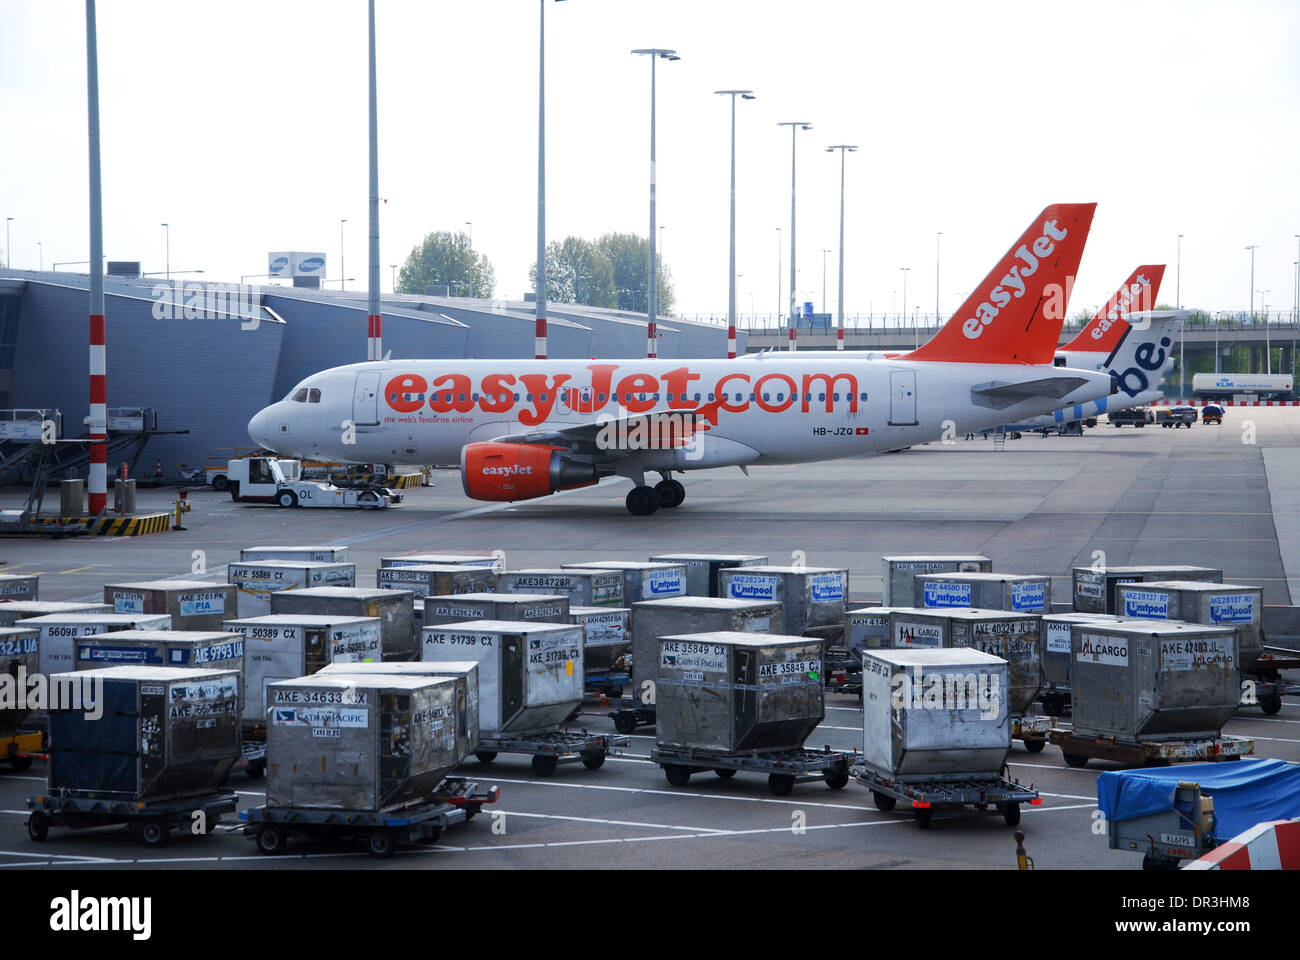 EasyJet Airbus at Schiphol Airport Amsterdam Netherlands - Stock Image